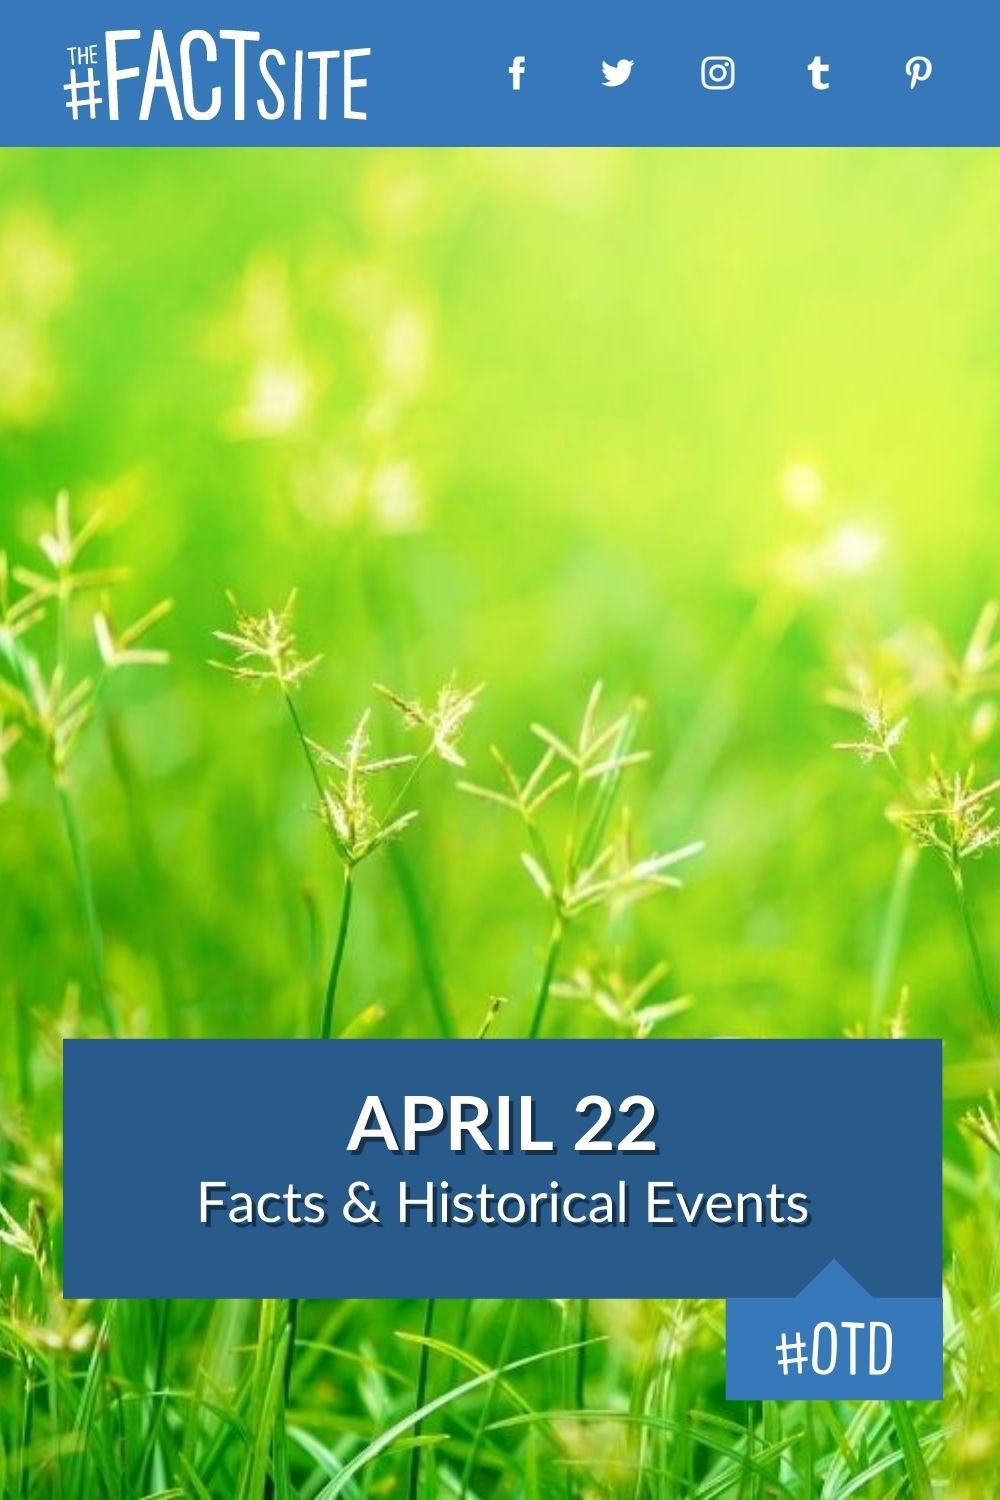 Facts & Historic Events That Happened on April 22